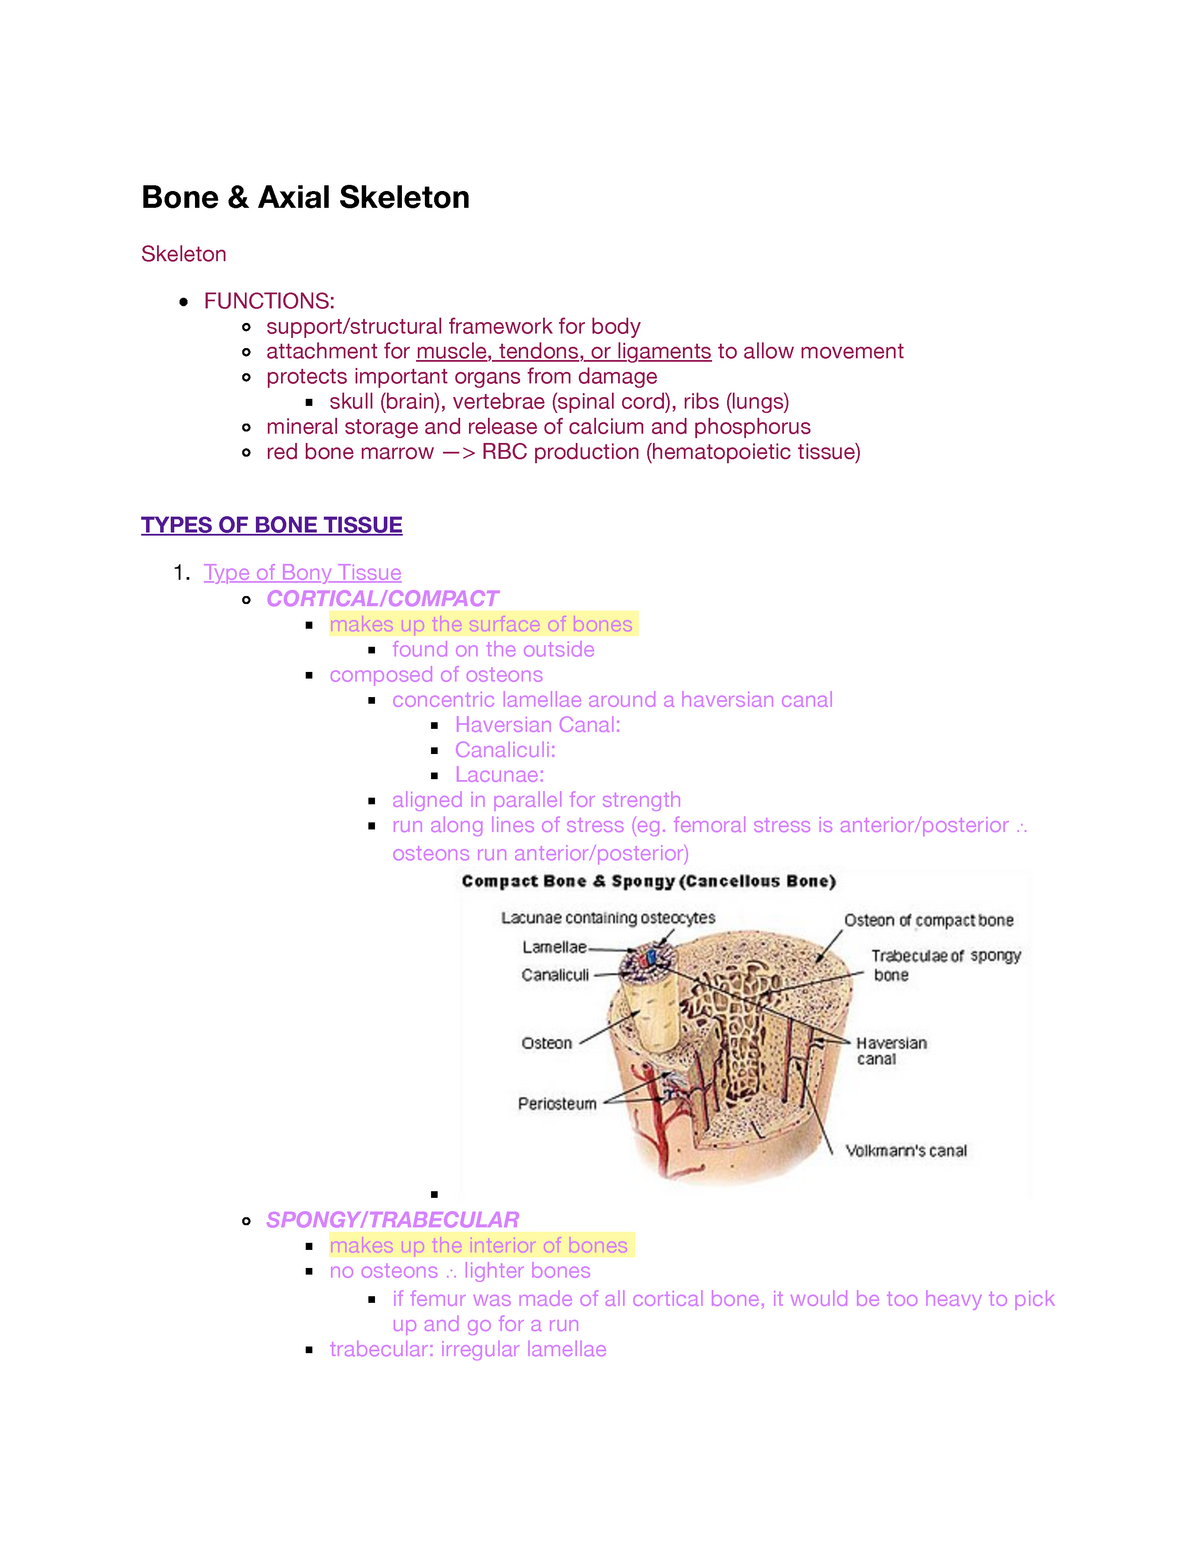 Bone & Axial Skeleton - Lecture notes 2 - 2222A: Systemic Approach